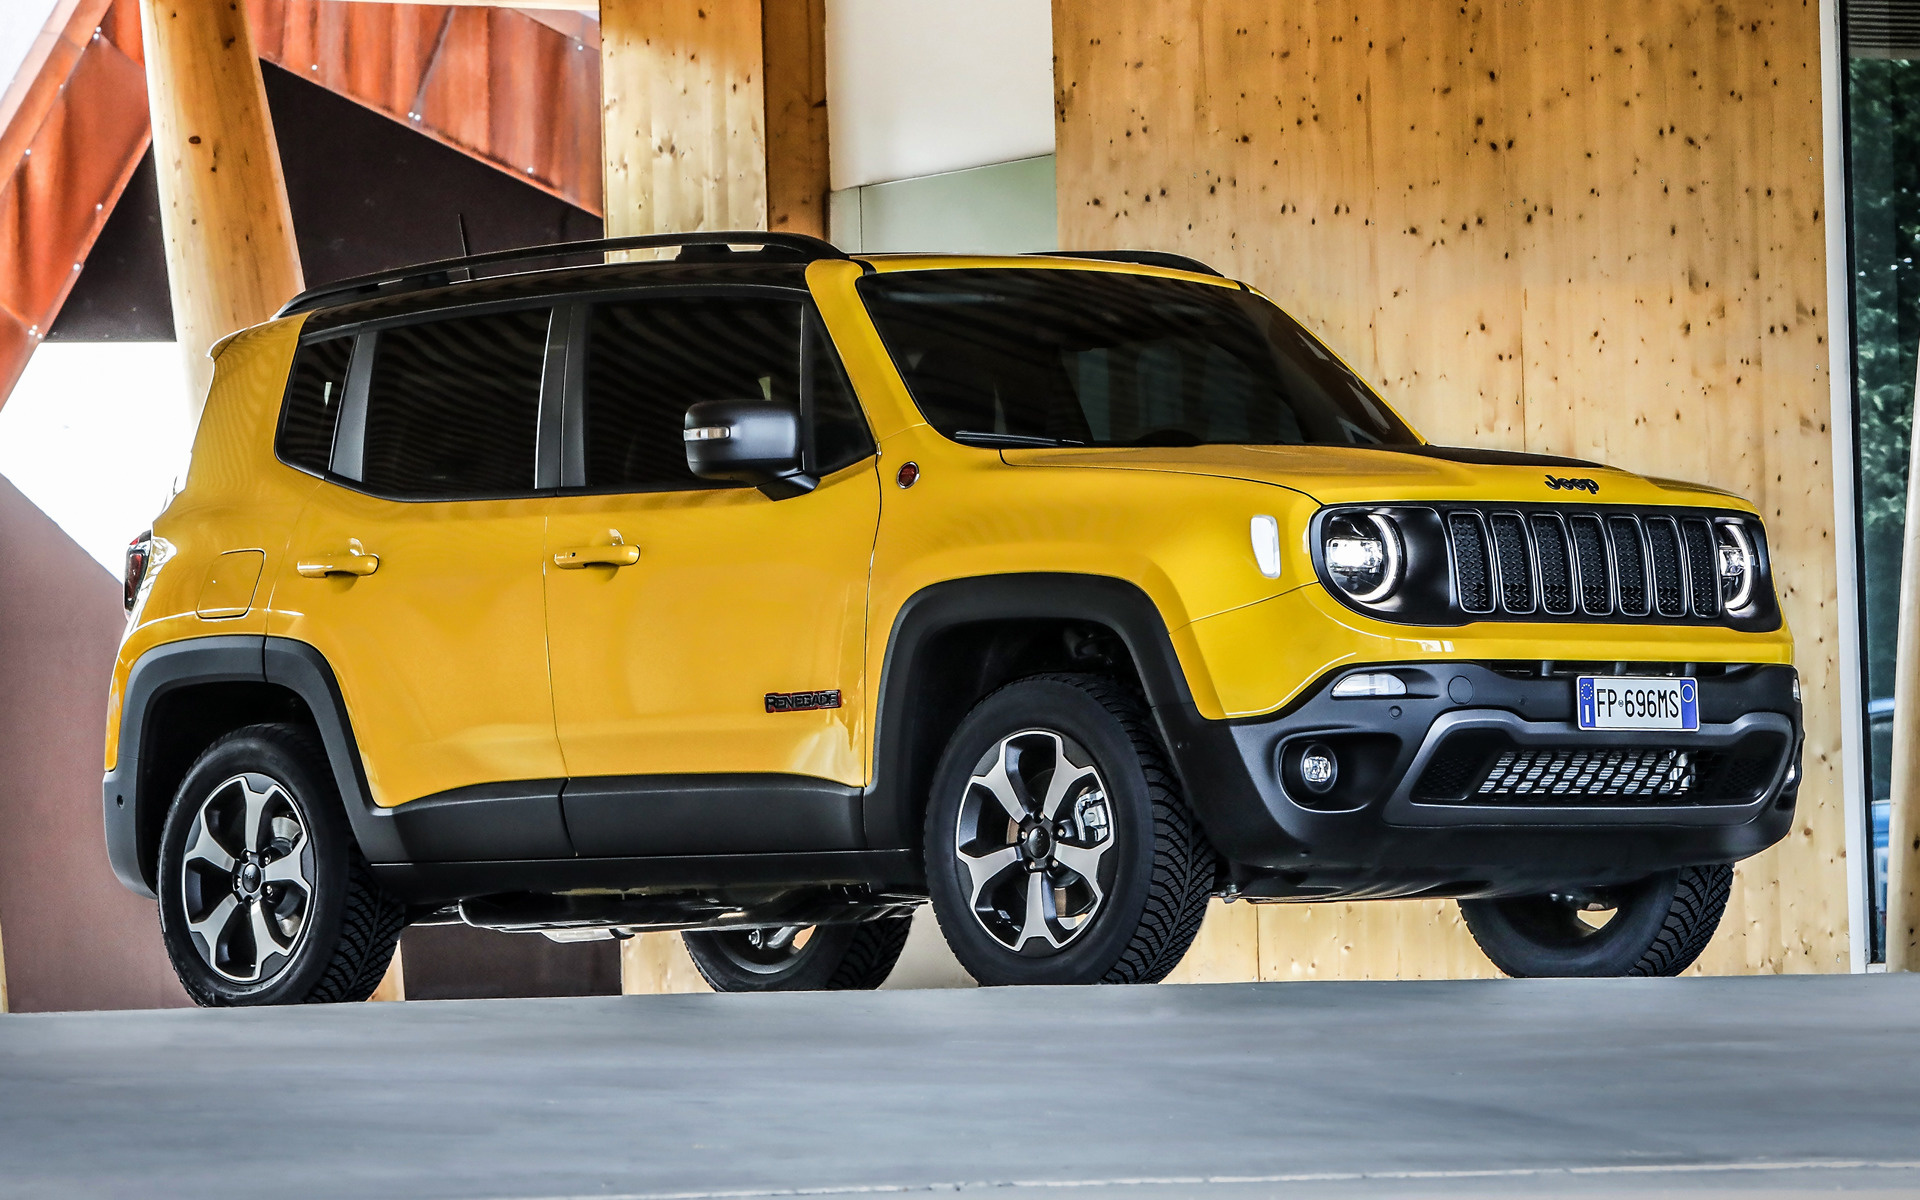 2016 Dodge Ram >> 2018 Jeep Renegade Trailhawk - Wallpapers and HD Images | Car Pixel